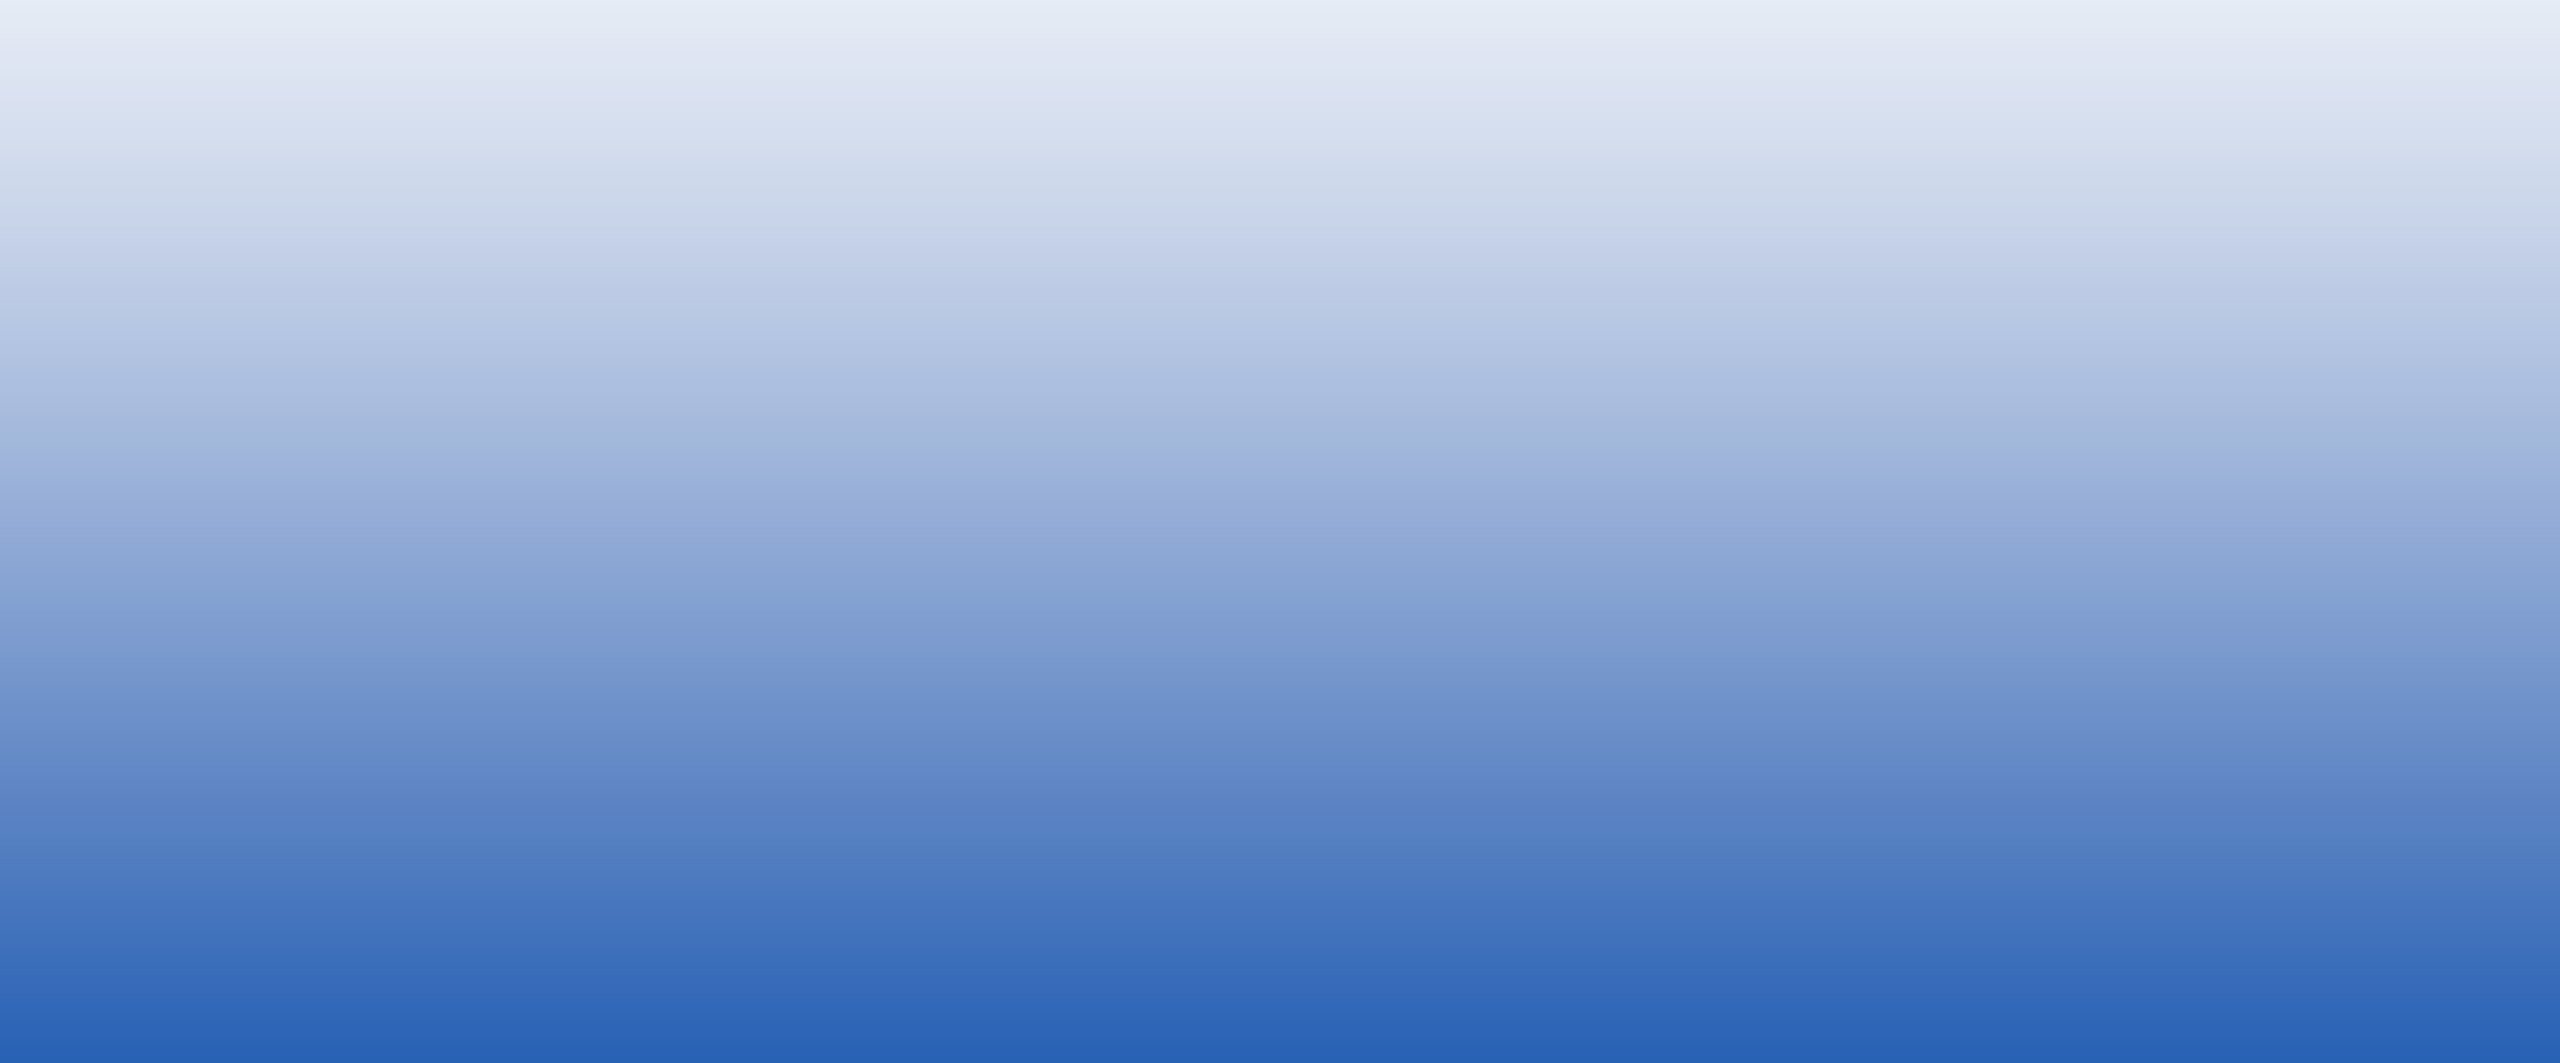 footer_blue_gradient-1